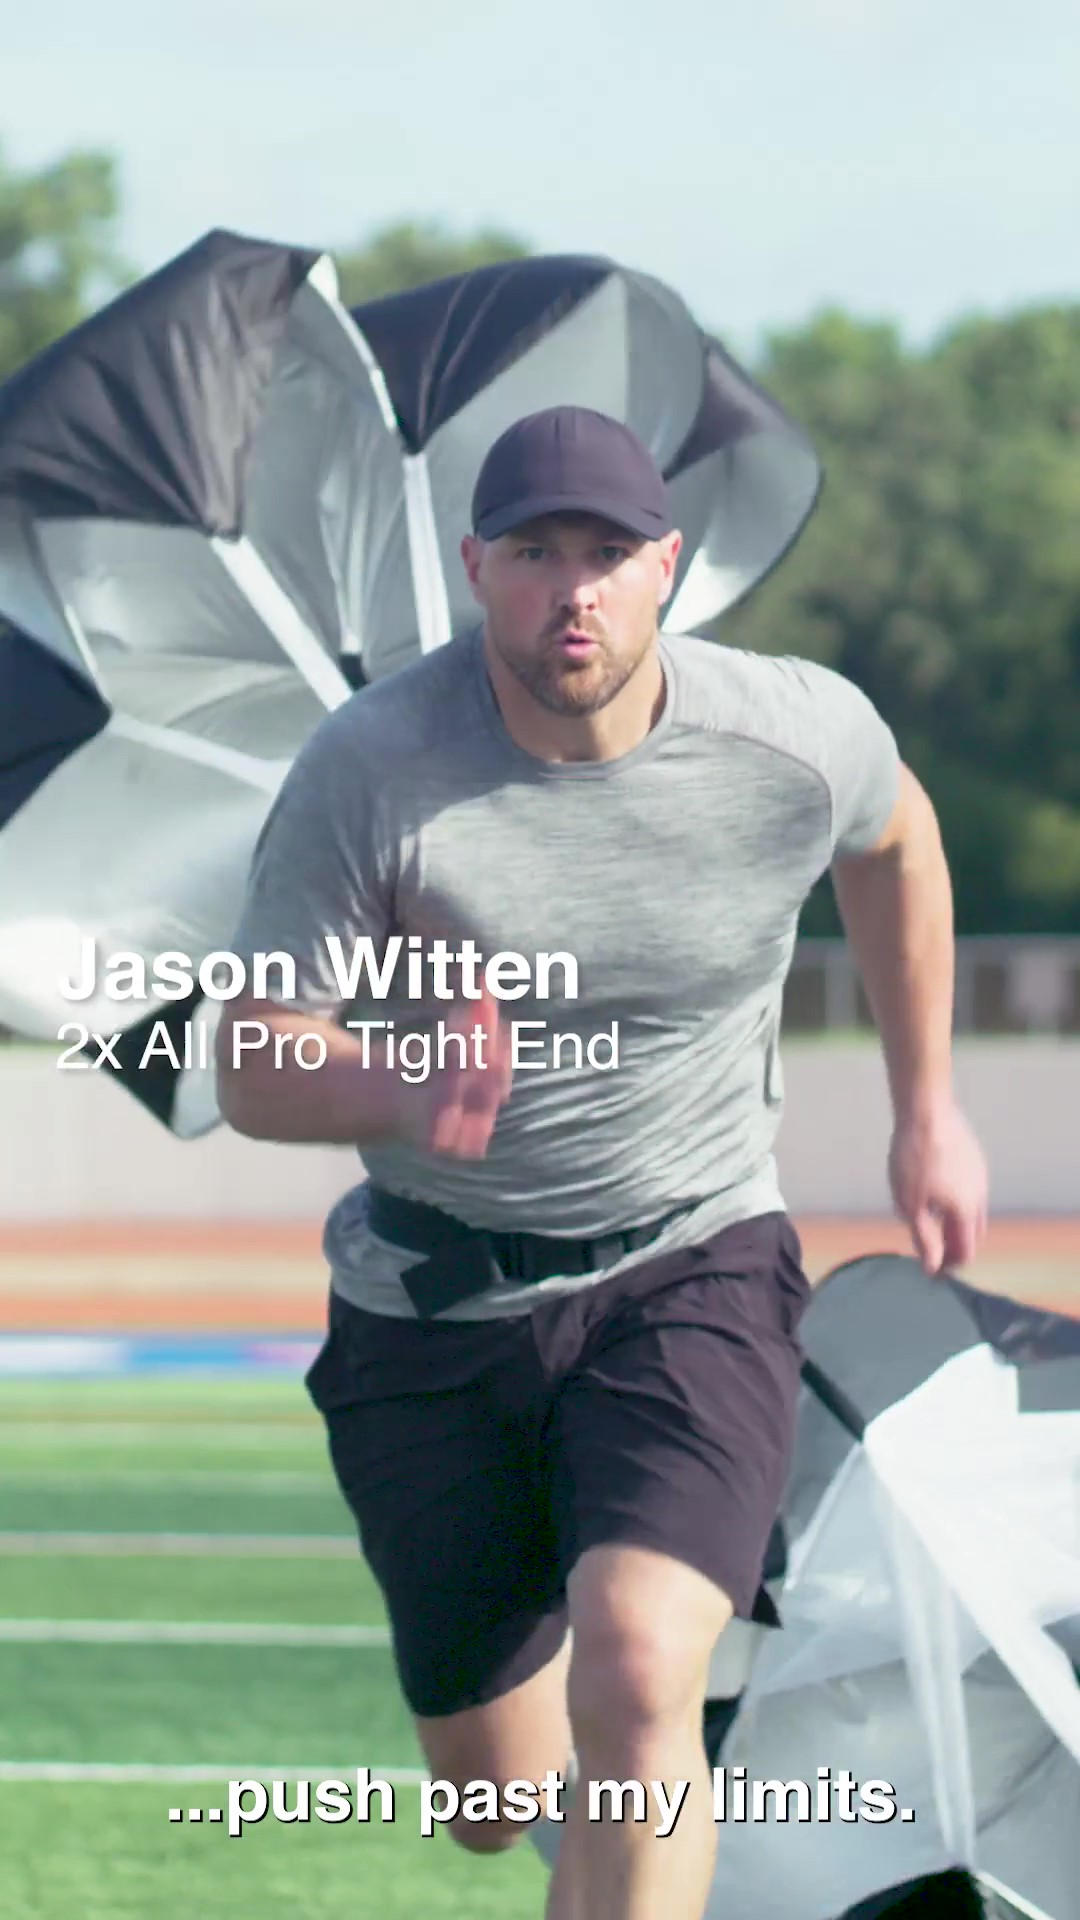 Jason Witten Train to Soak Video